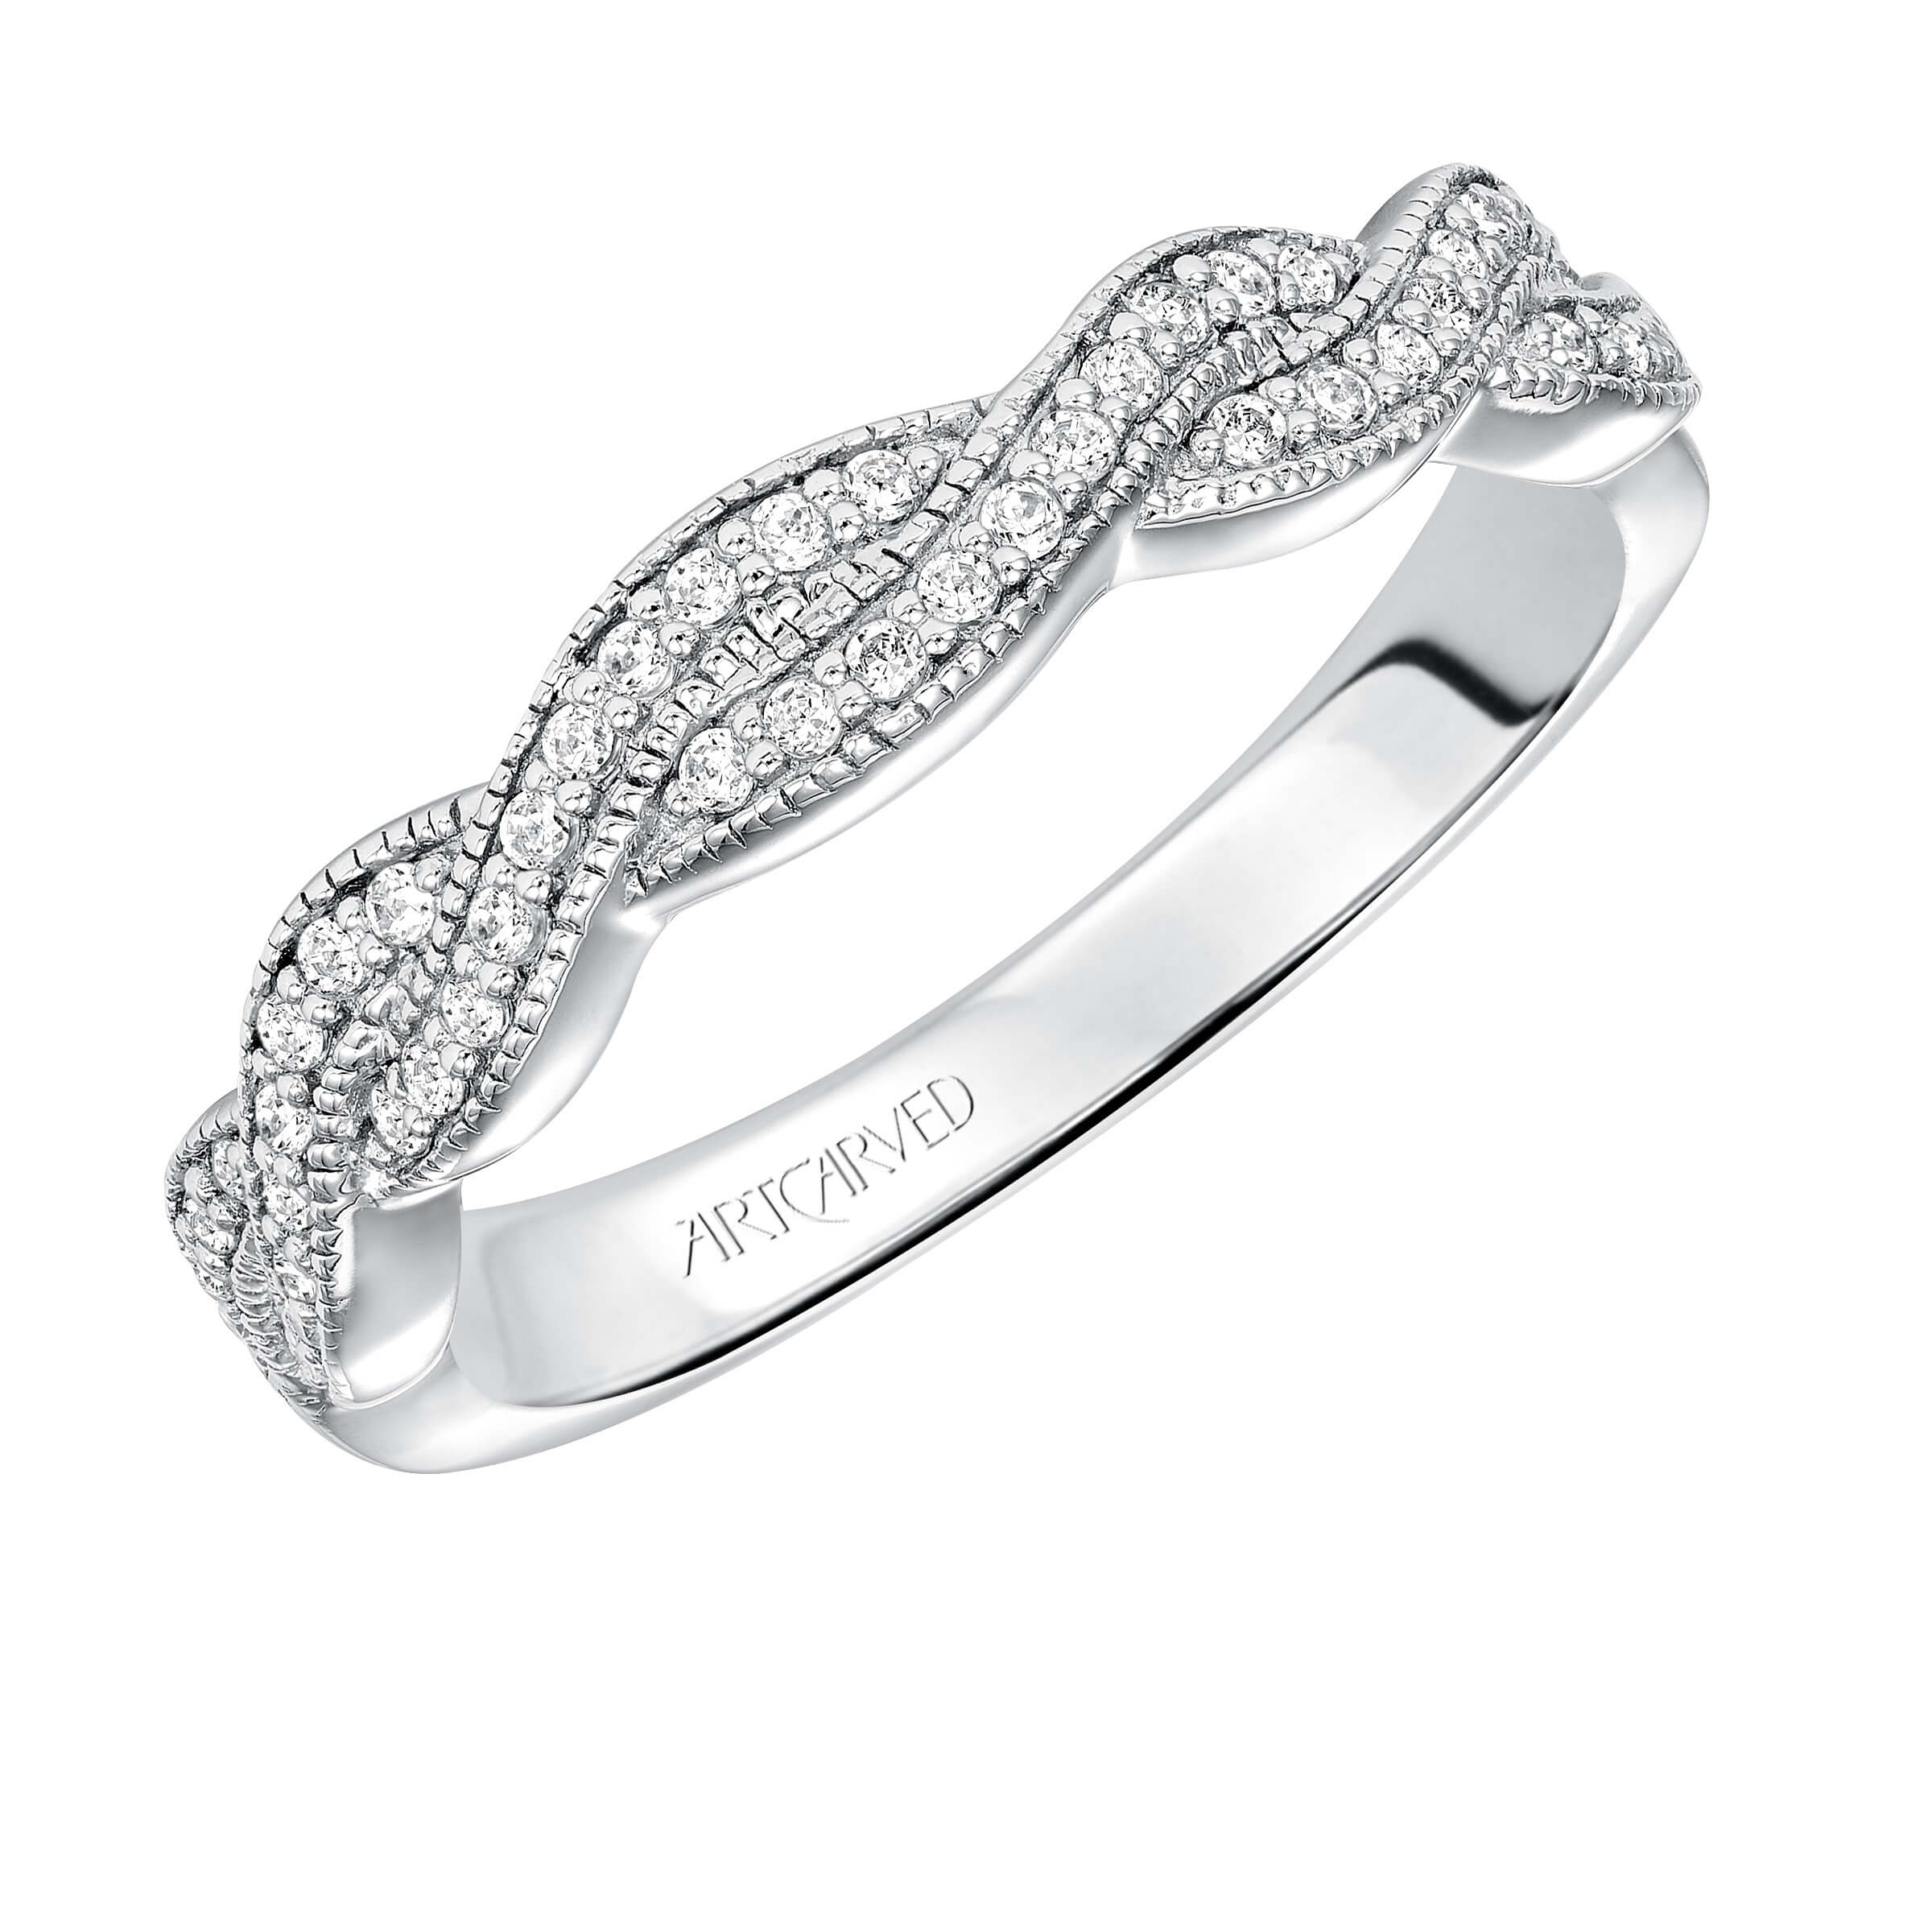 ArtCarved twist diamond band